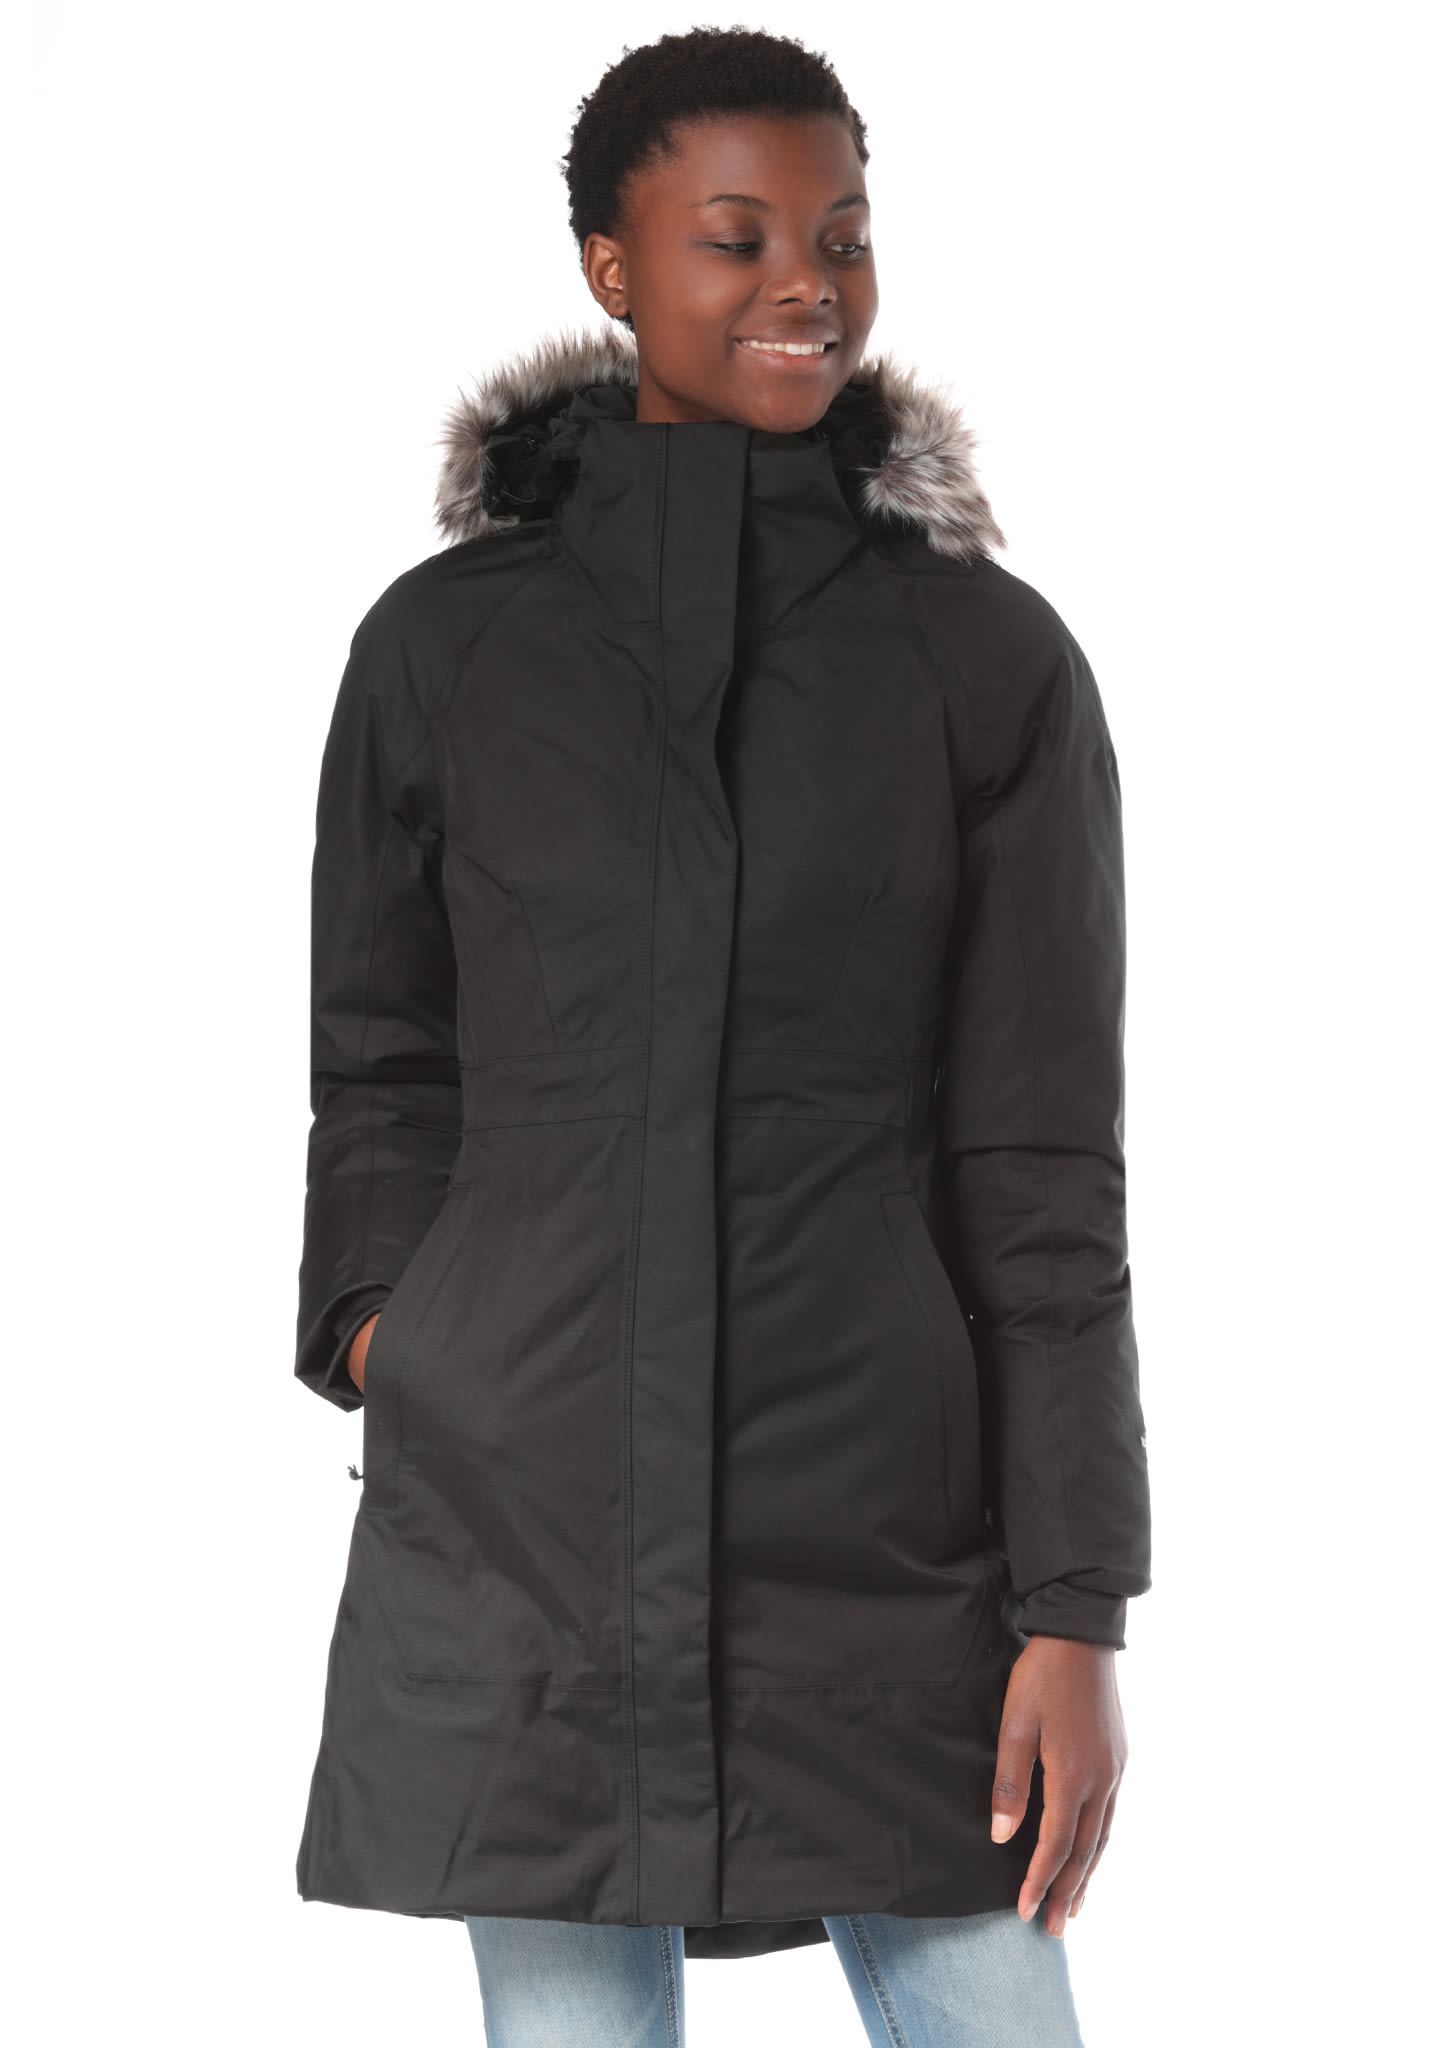 Arctic Ii North Femme Pour The Parka Face Noir Manteau Planet qwEF4C7x